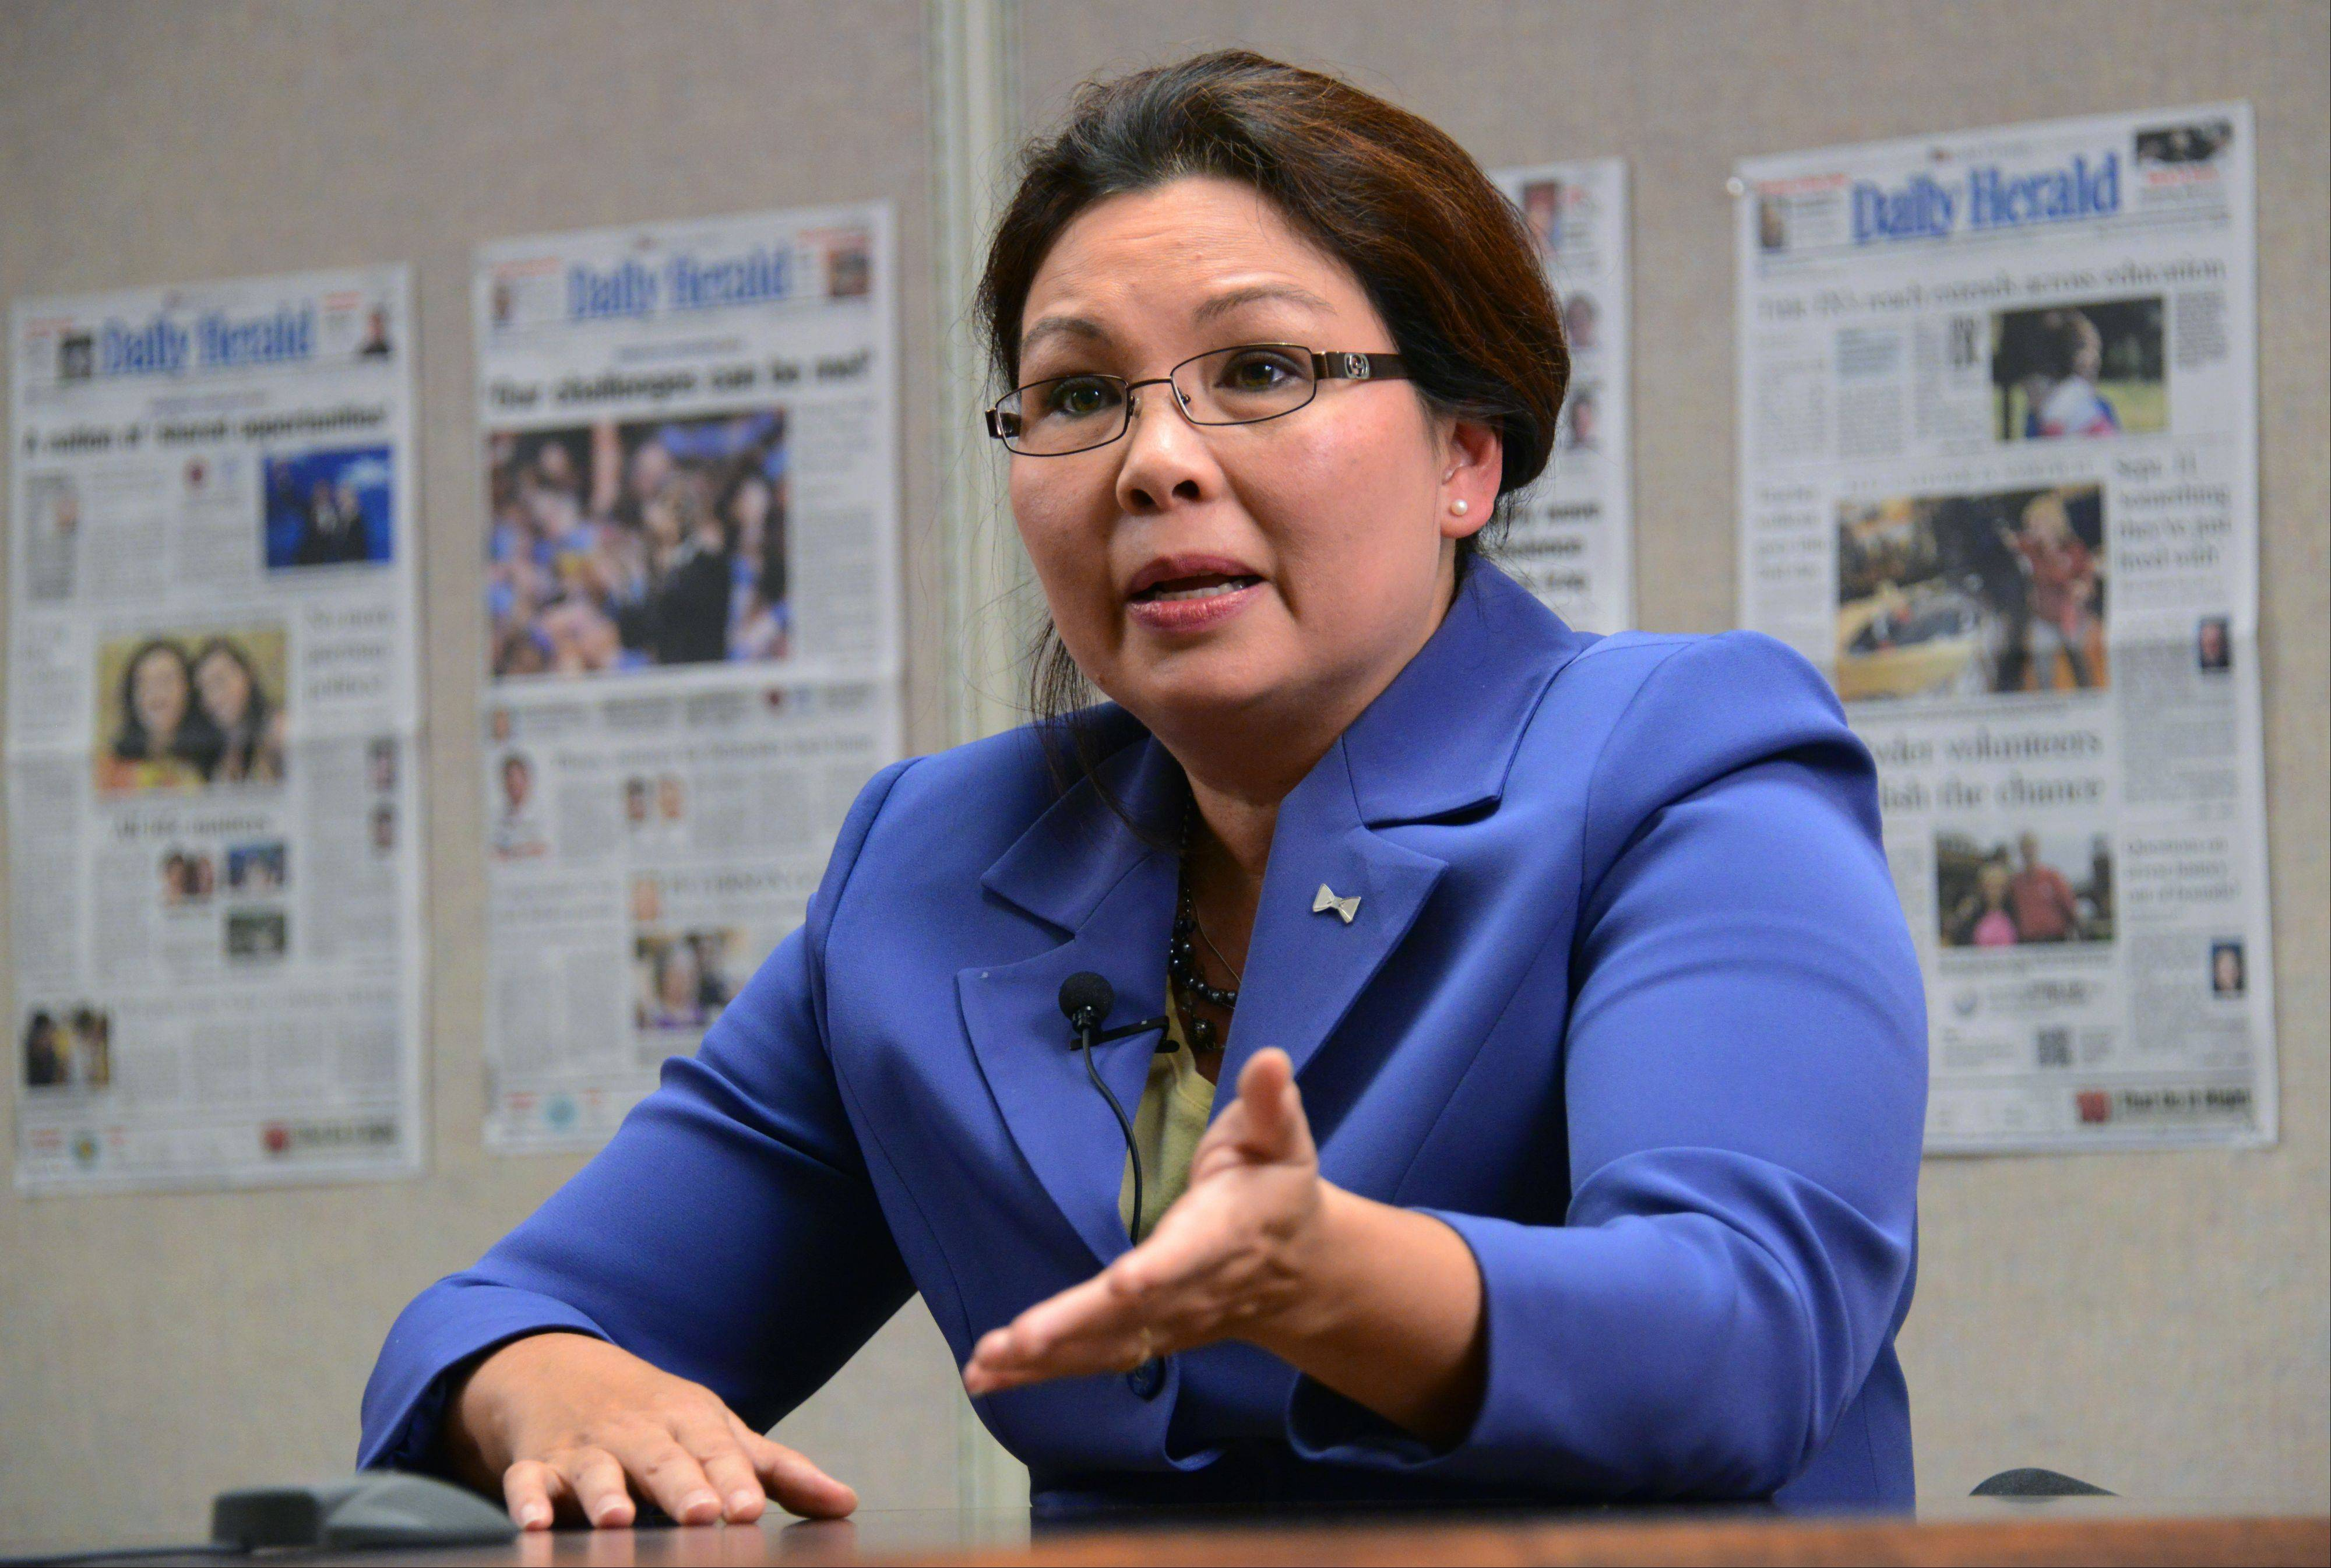 Democratic Congresswoman Tammy Duckworth, of Hoffman Estates, has offered to cut her own pay in the event of a sequester.